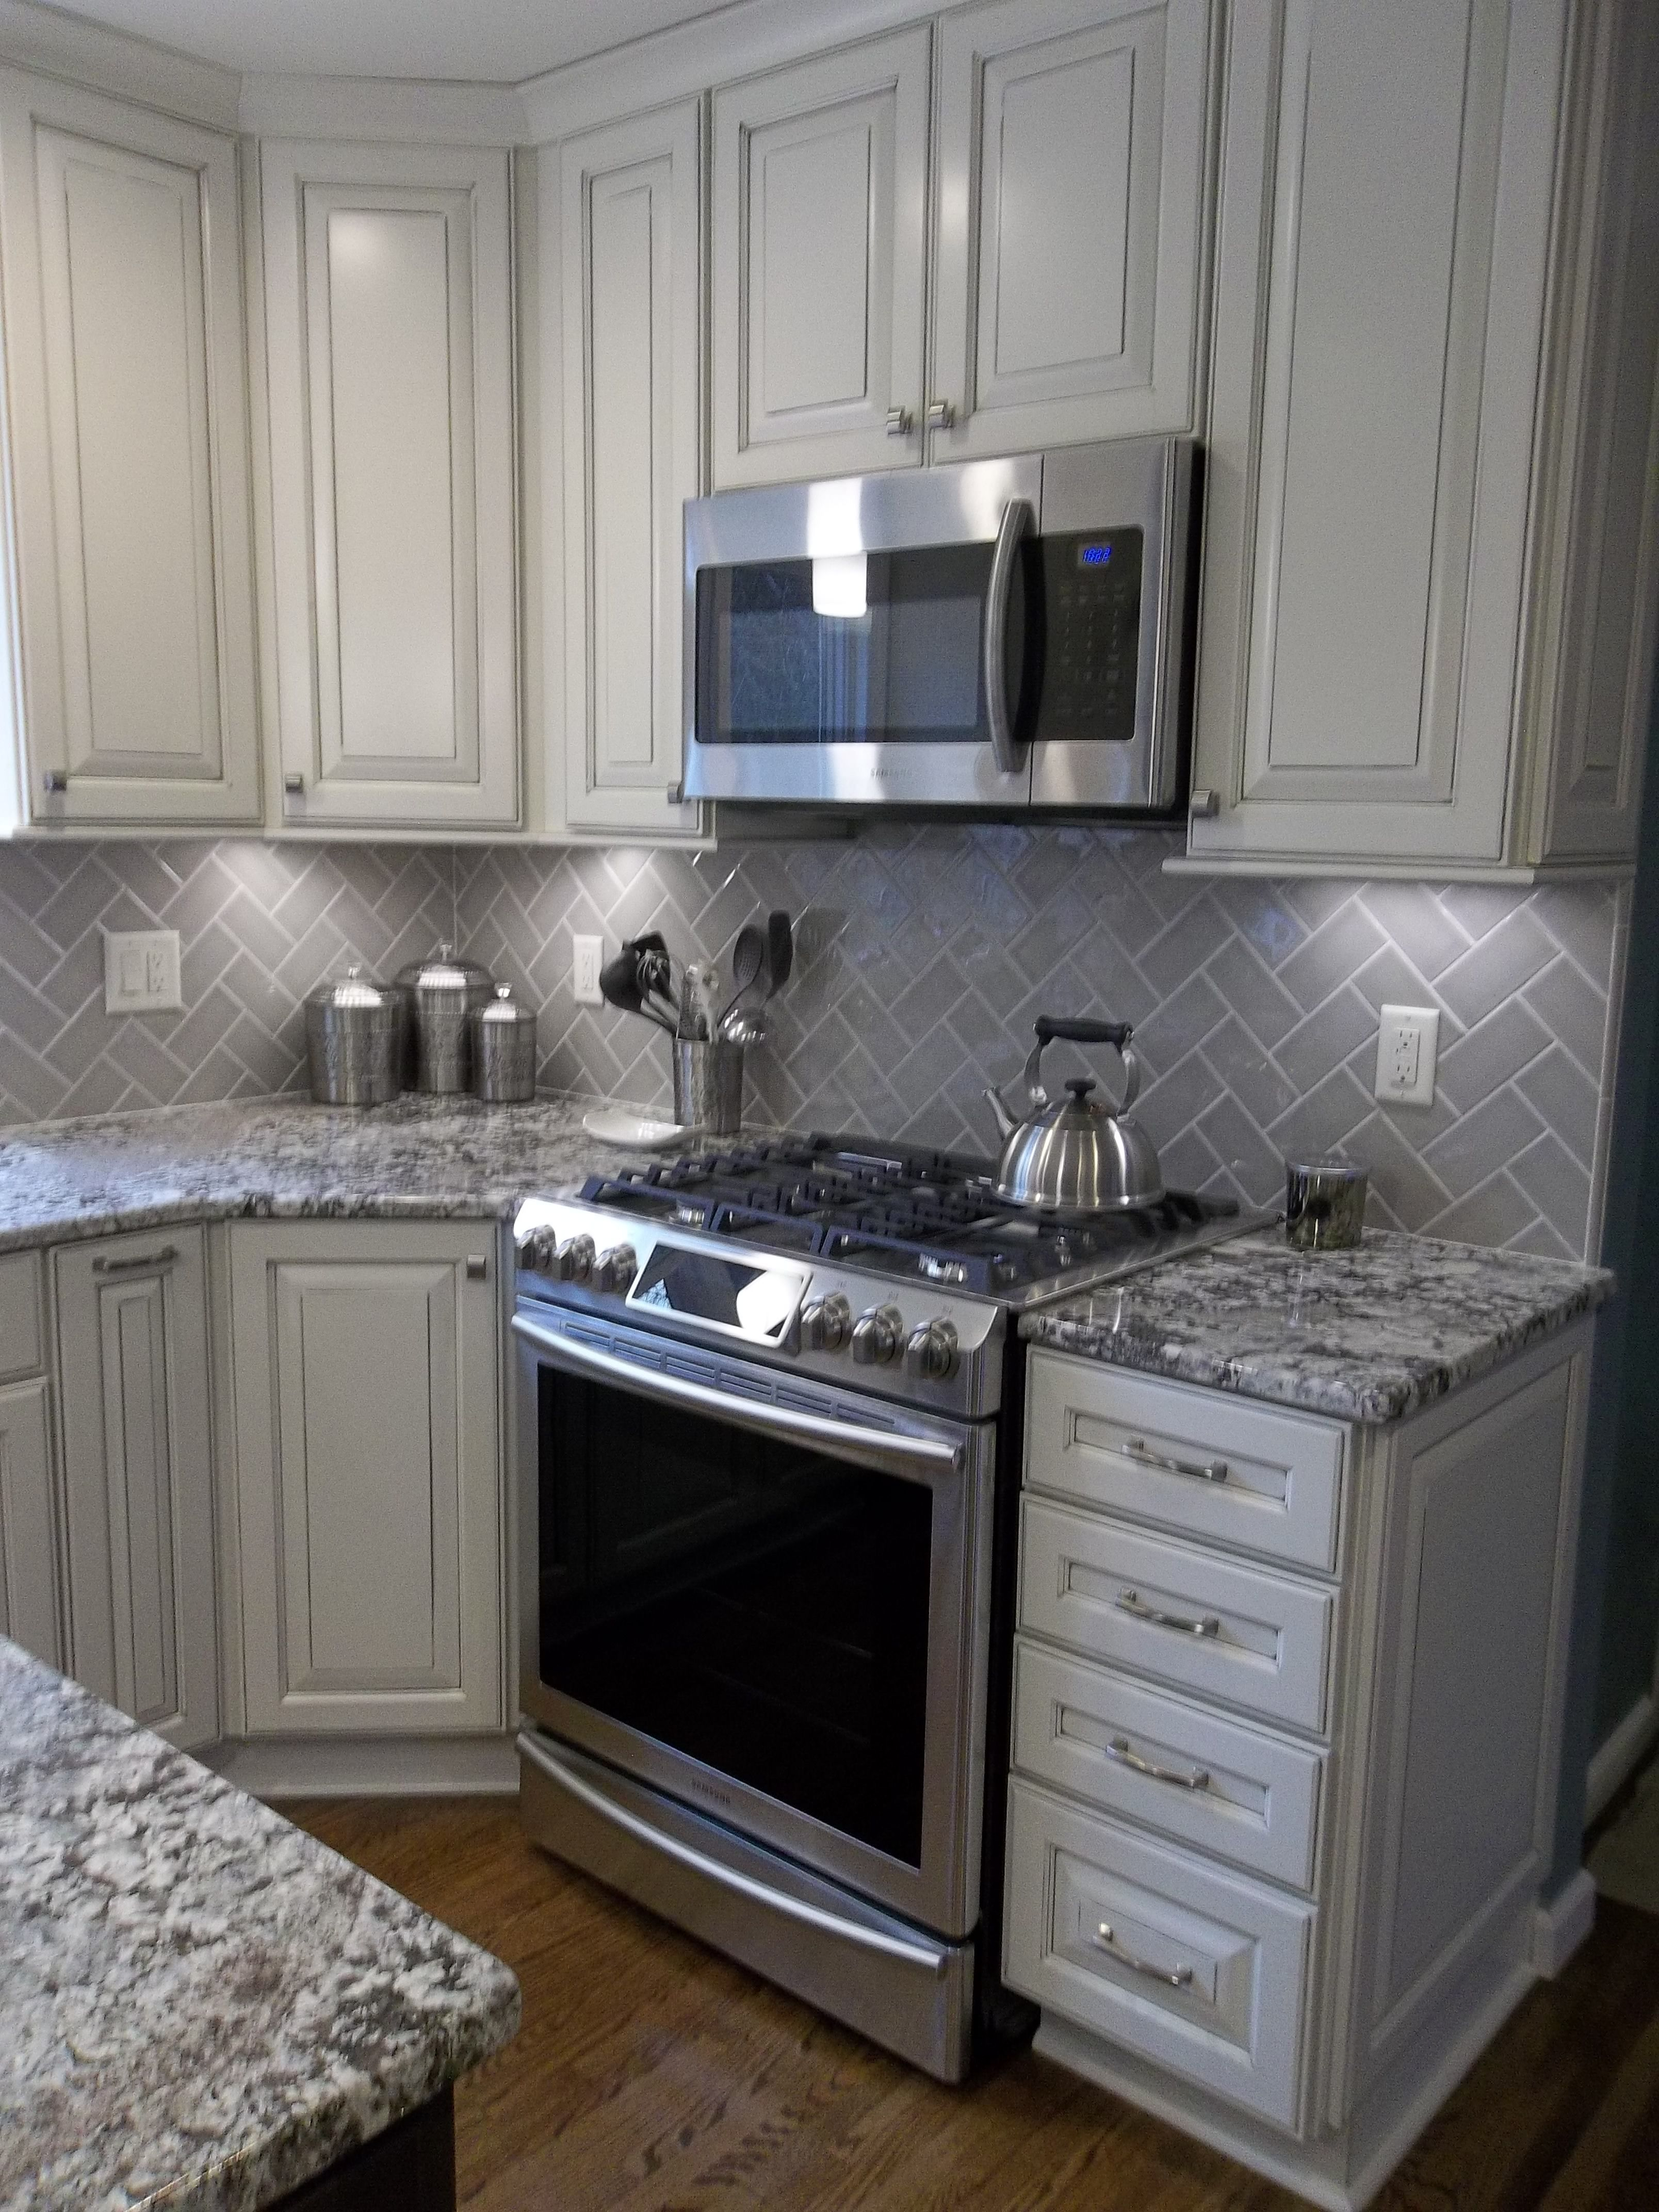 check out this beautiful kitchen remodel completed by loweu0027s project specialist of interiors jenny santiago